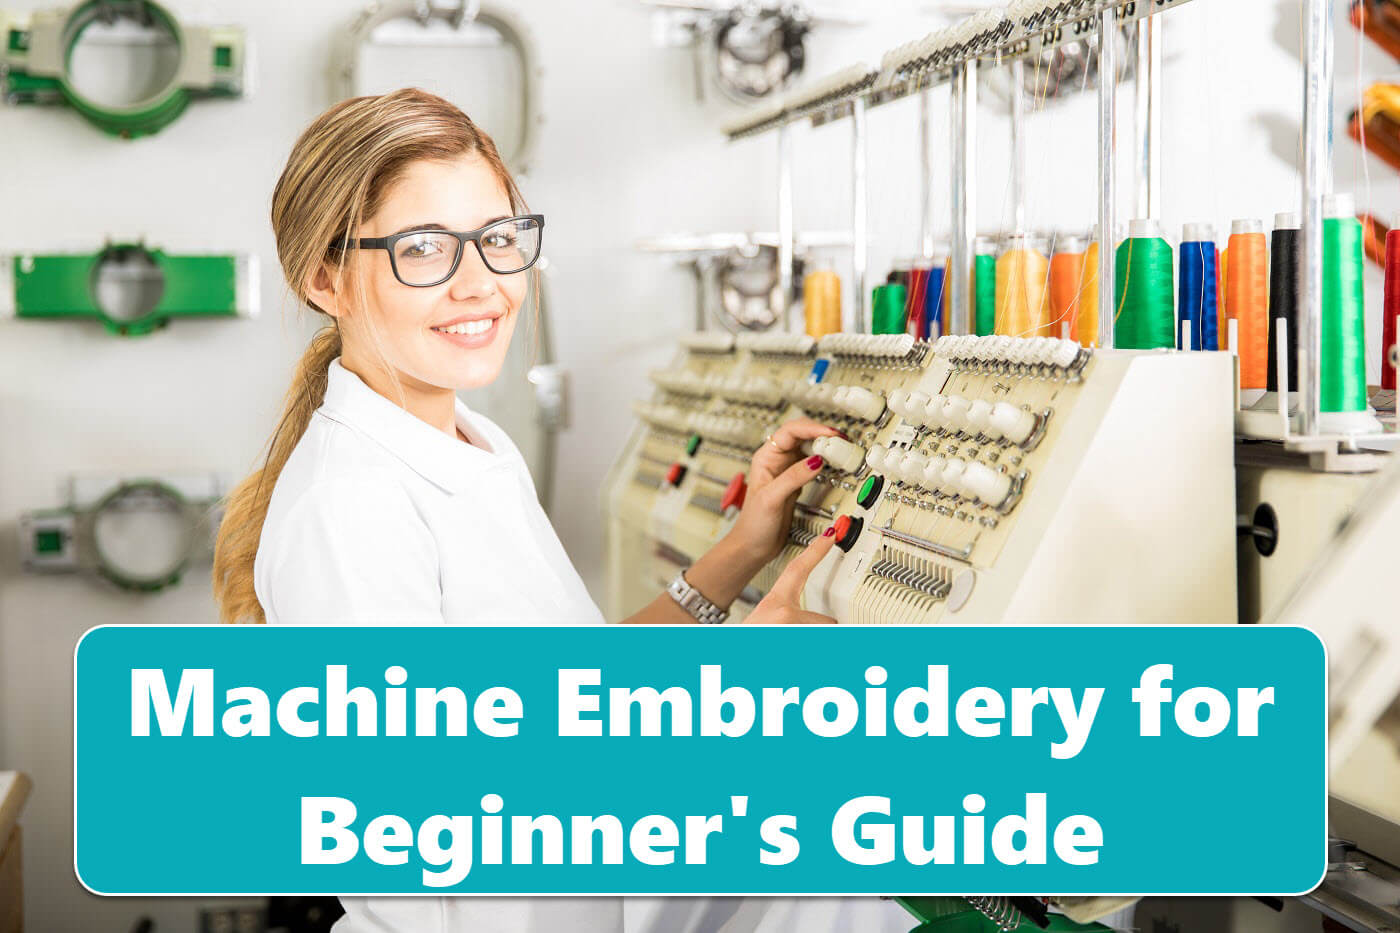 Machine Embroidery for Beginner's Guide